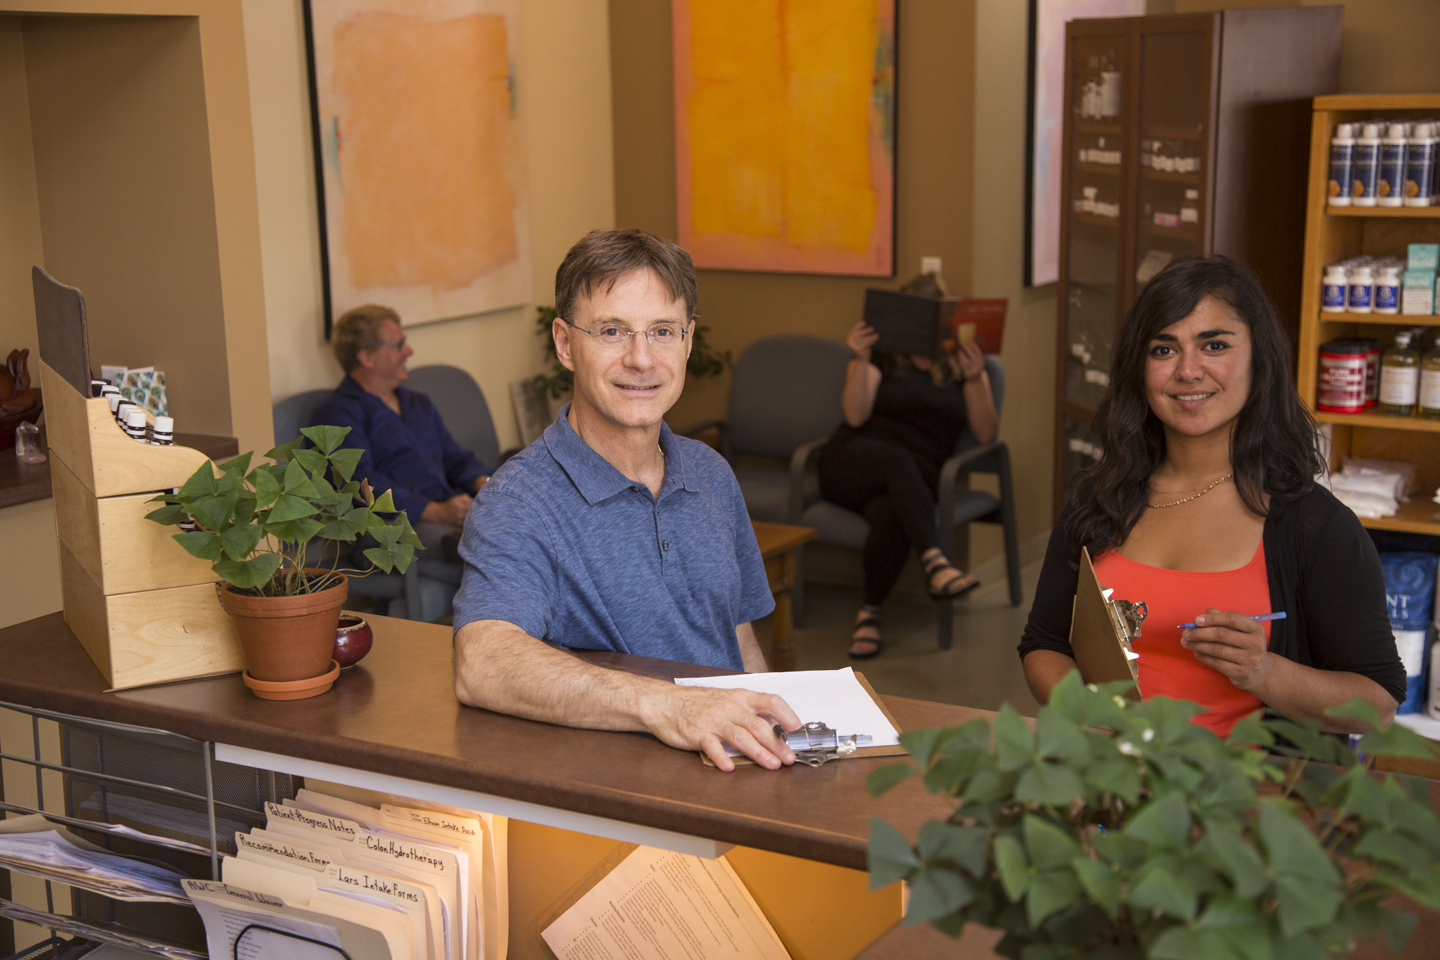 Lars and elham pic for digestive wellness